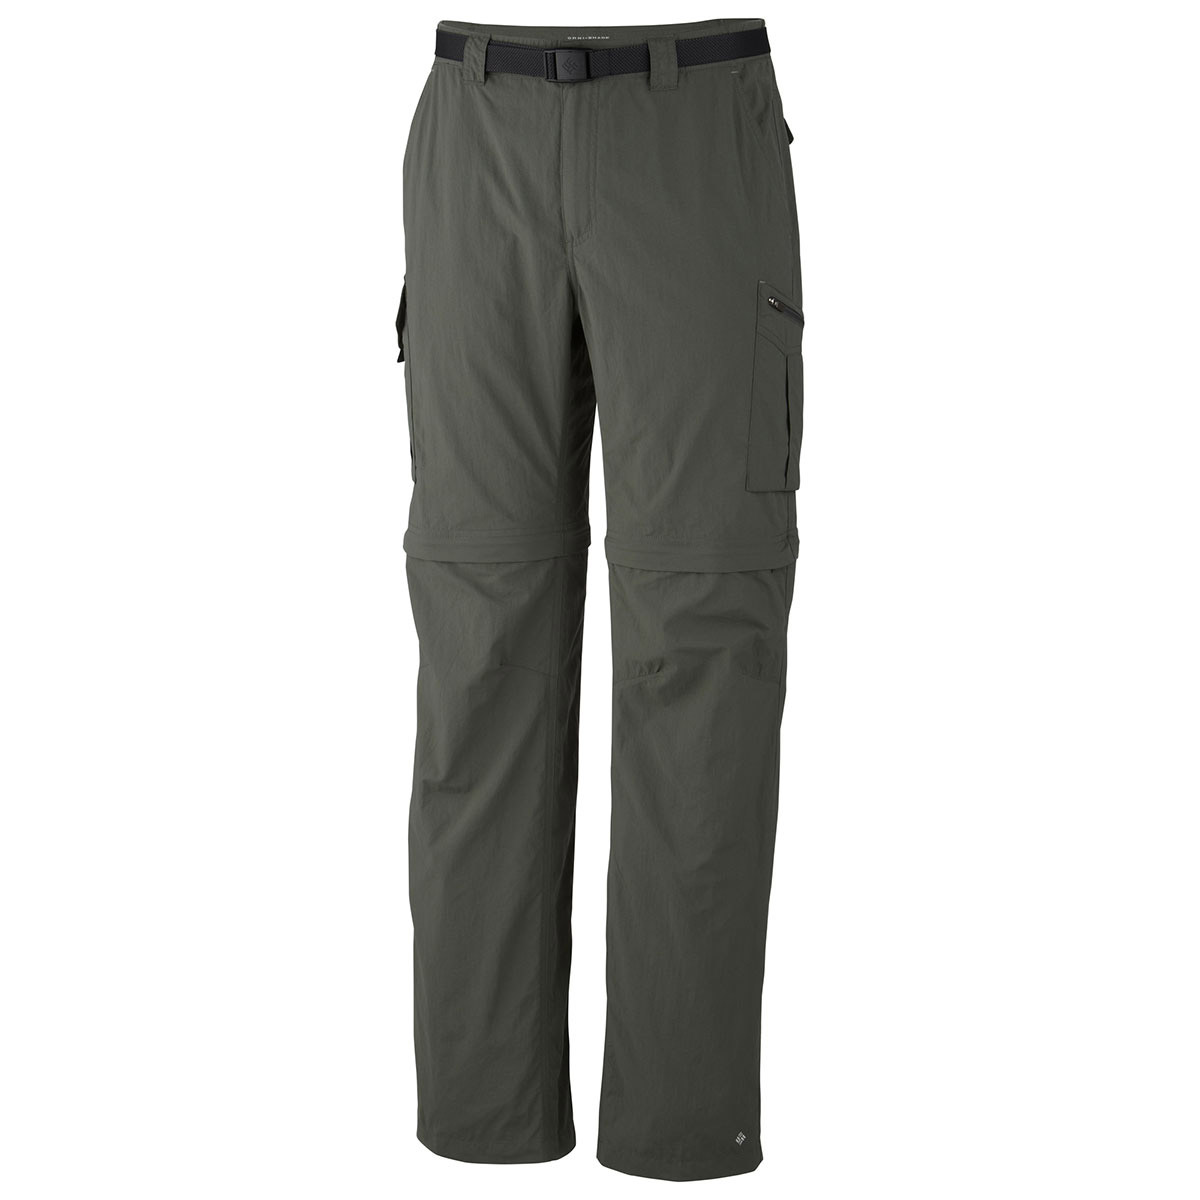 Quick Dry Columbia Cargo Hiking Pants (Men) Image